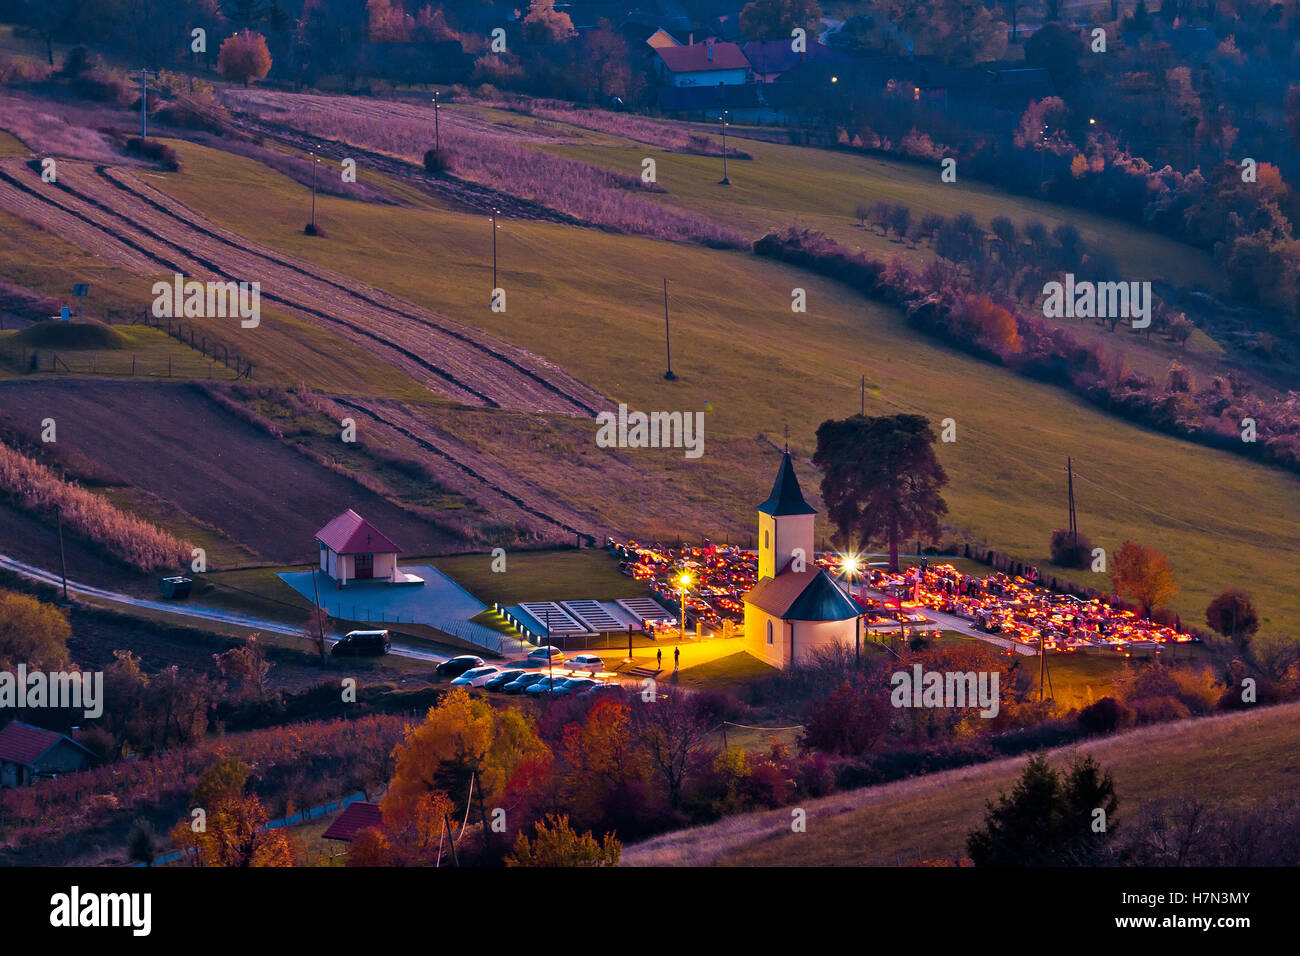 Idyllic church and graveyard evening view from above, Prigorje region of Croatia - Stock Image